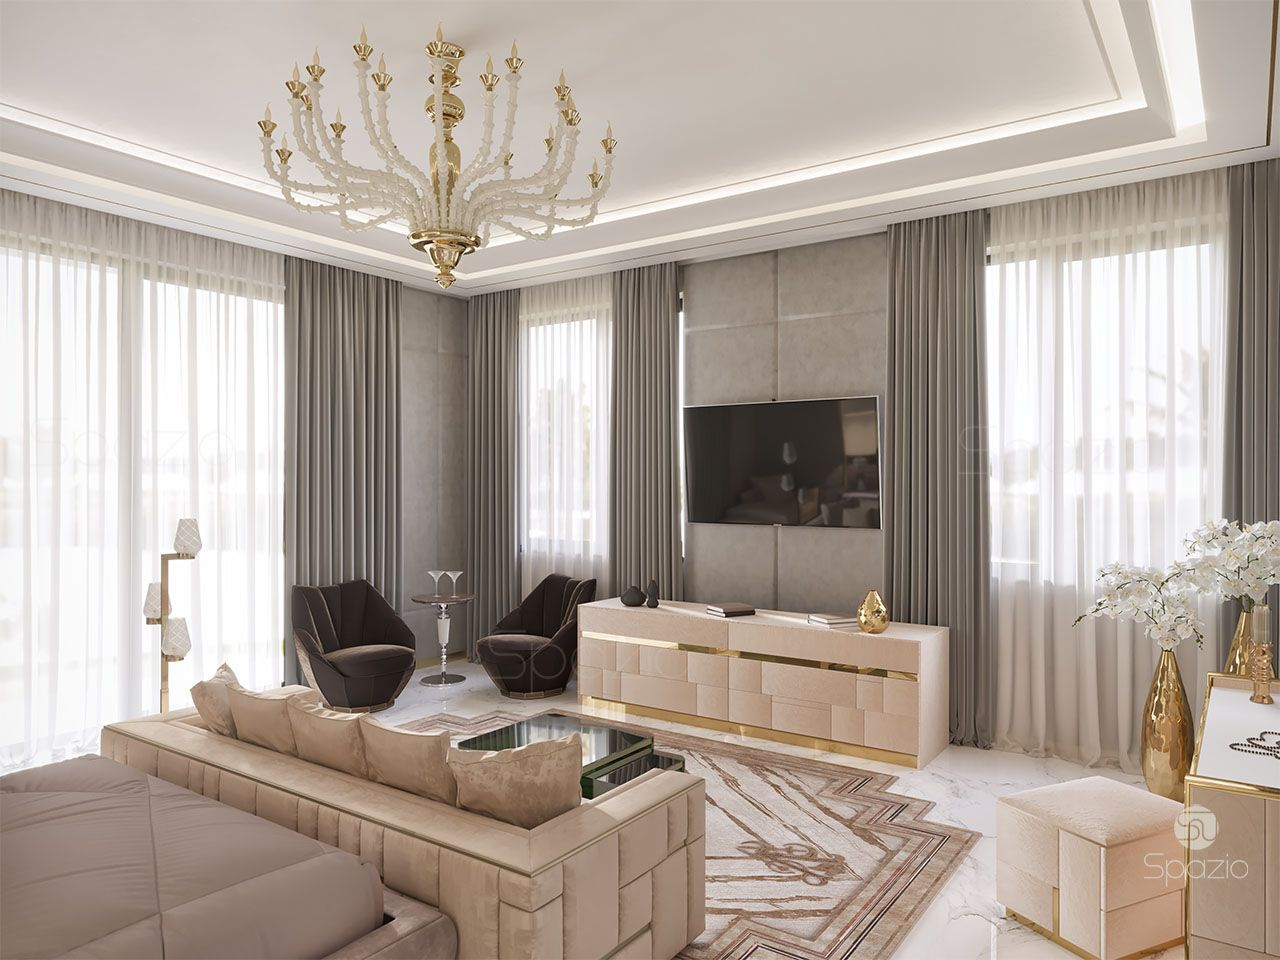 Luxury master bedroom design spazio dubai spazio for Home interior design photo gallery